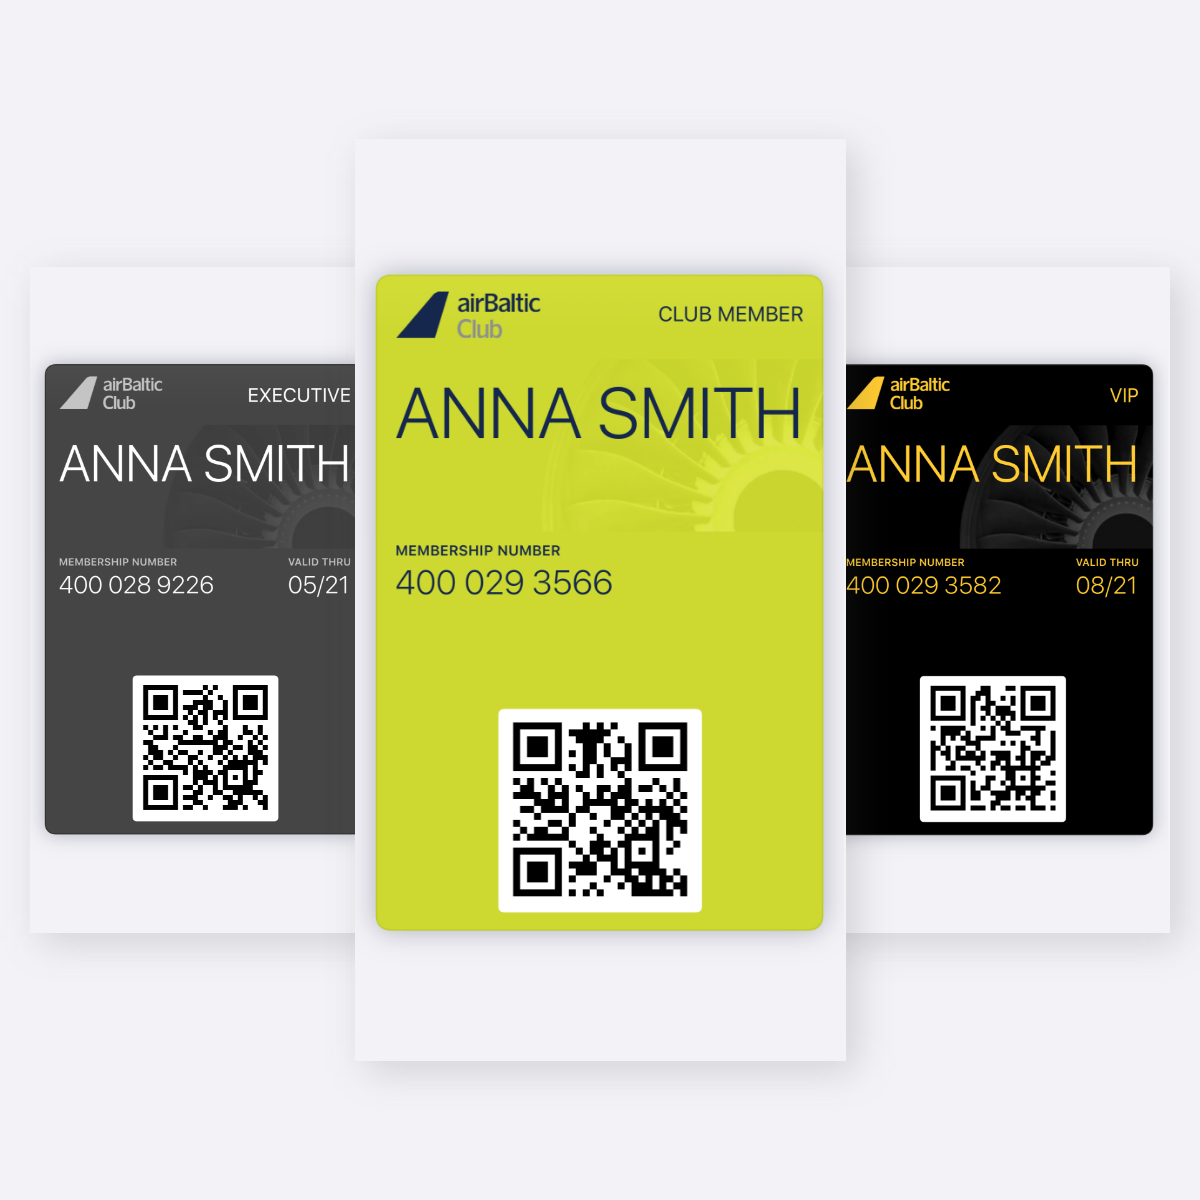 Download airBaltic Club digital  card image